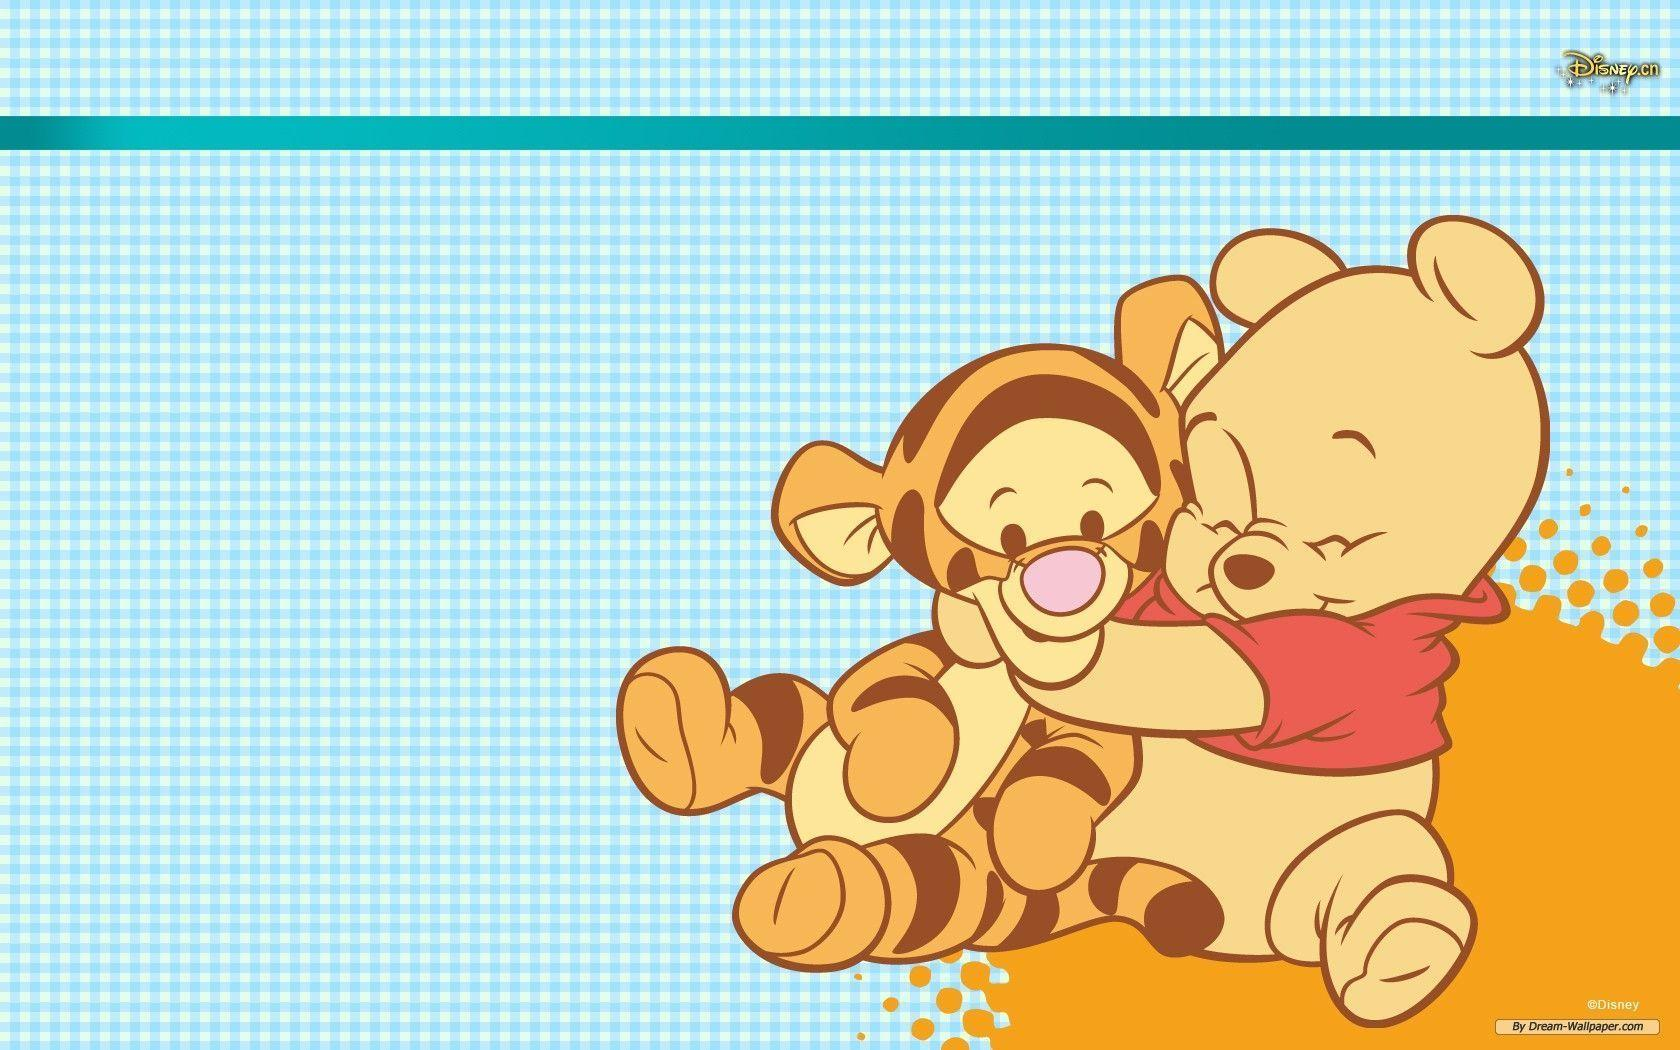 Wallpapers For > Winnie The Pooh Wallpaper Desktop